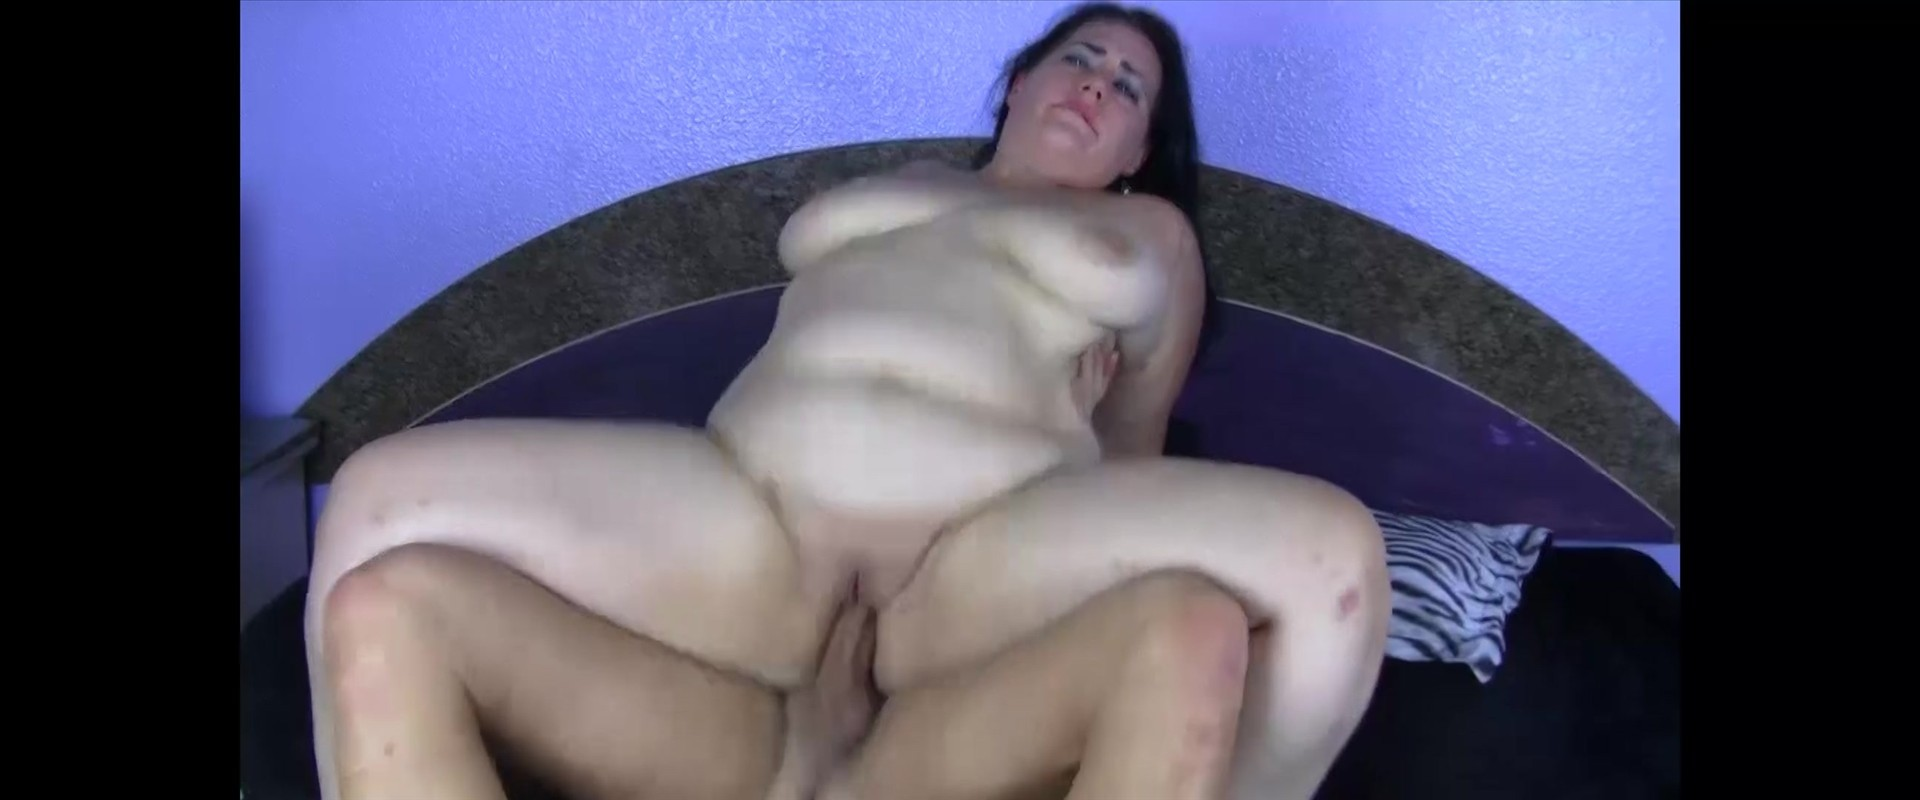 Brother shows step sister penis